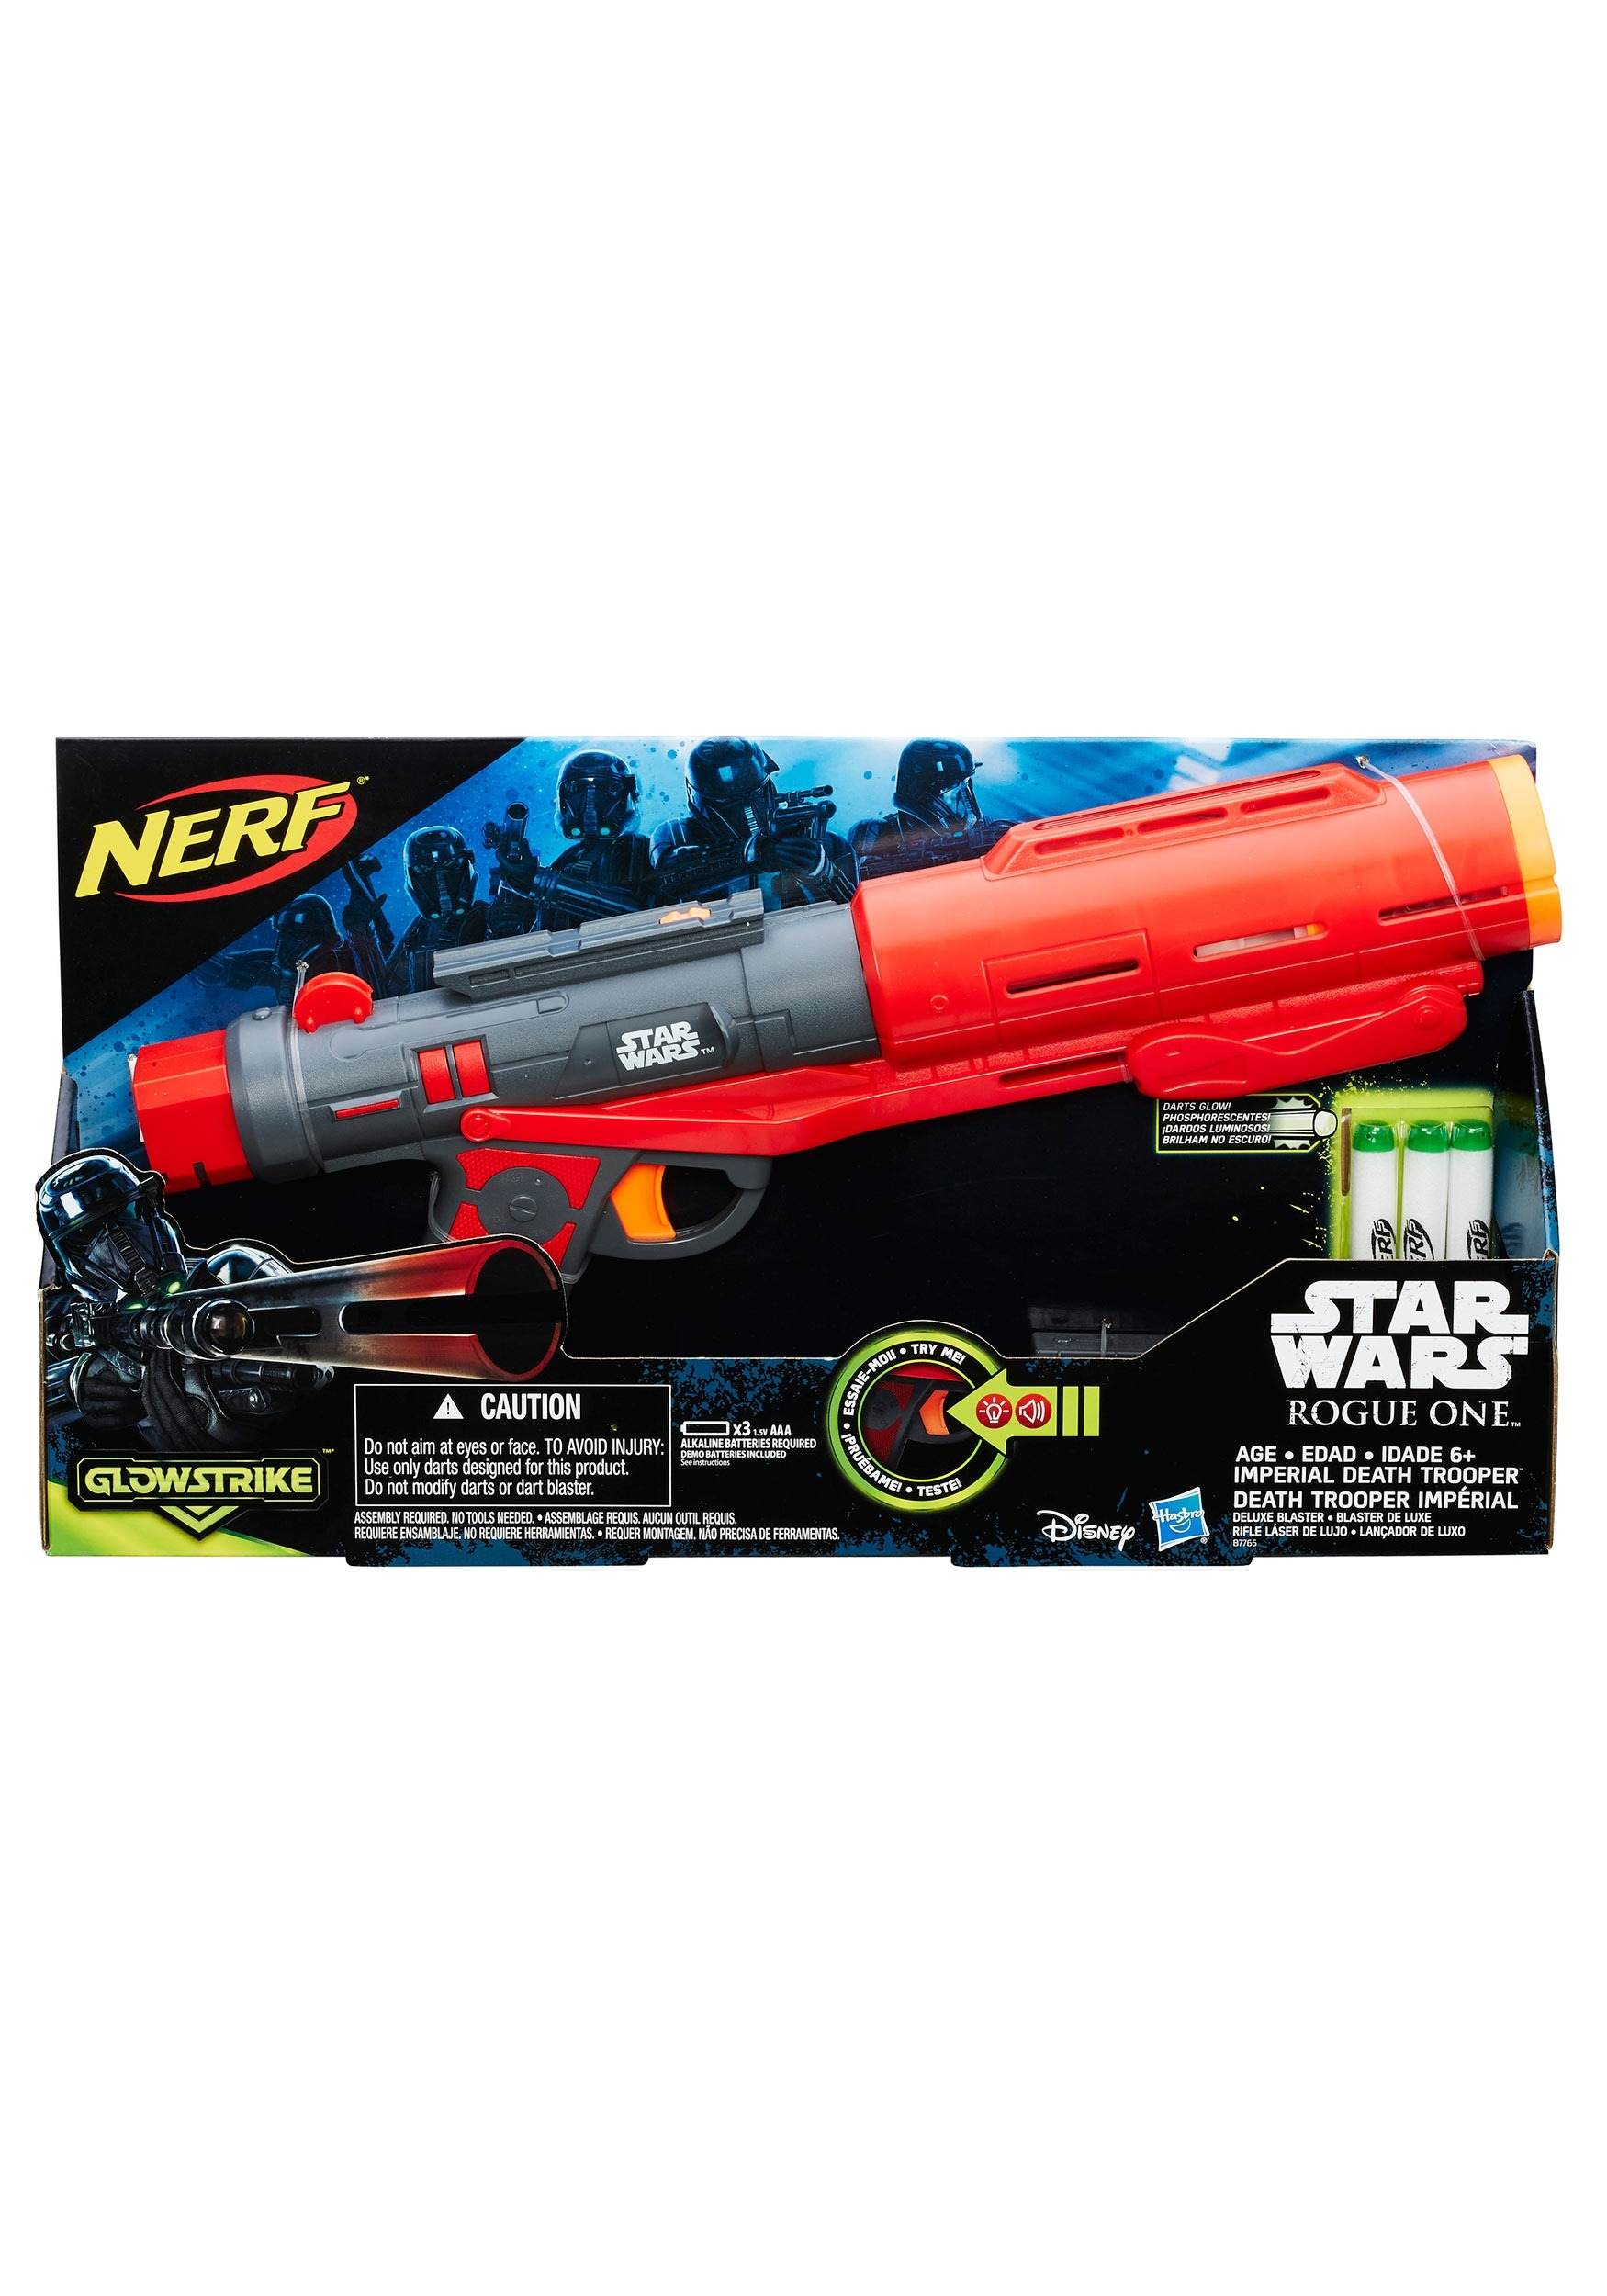 Rogue One Imperial Death Trooper Deluxe Nerf Blaster EEDHSB7765